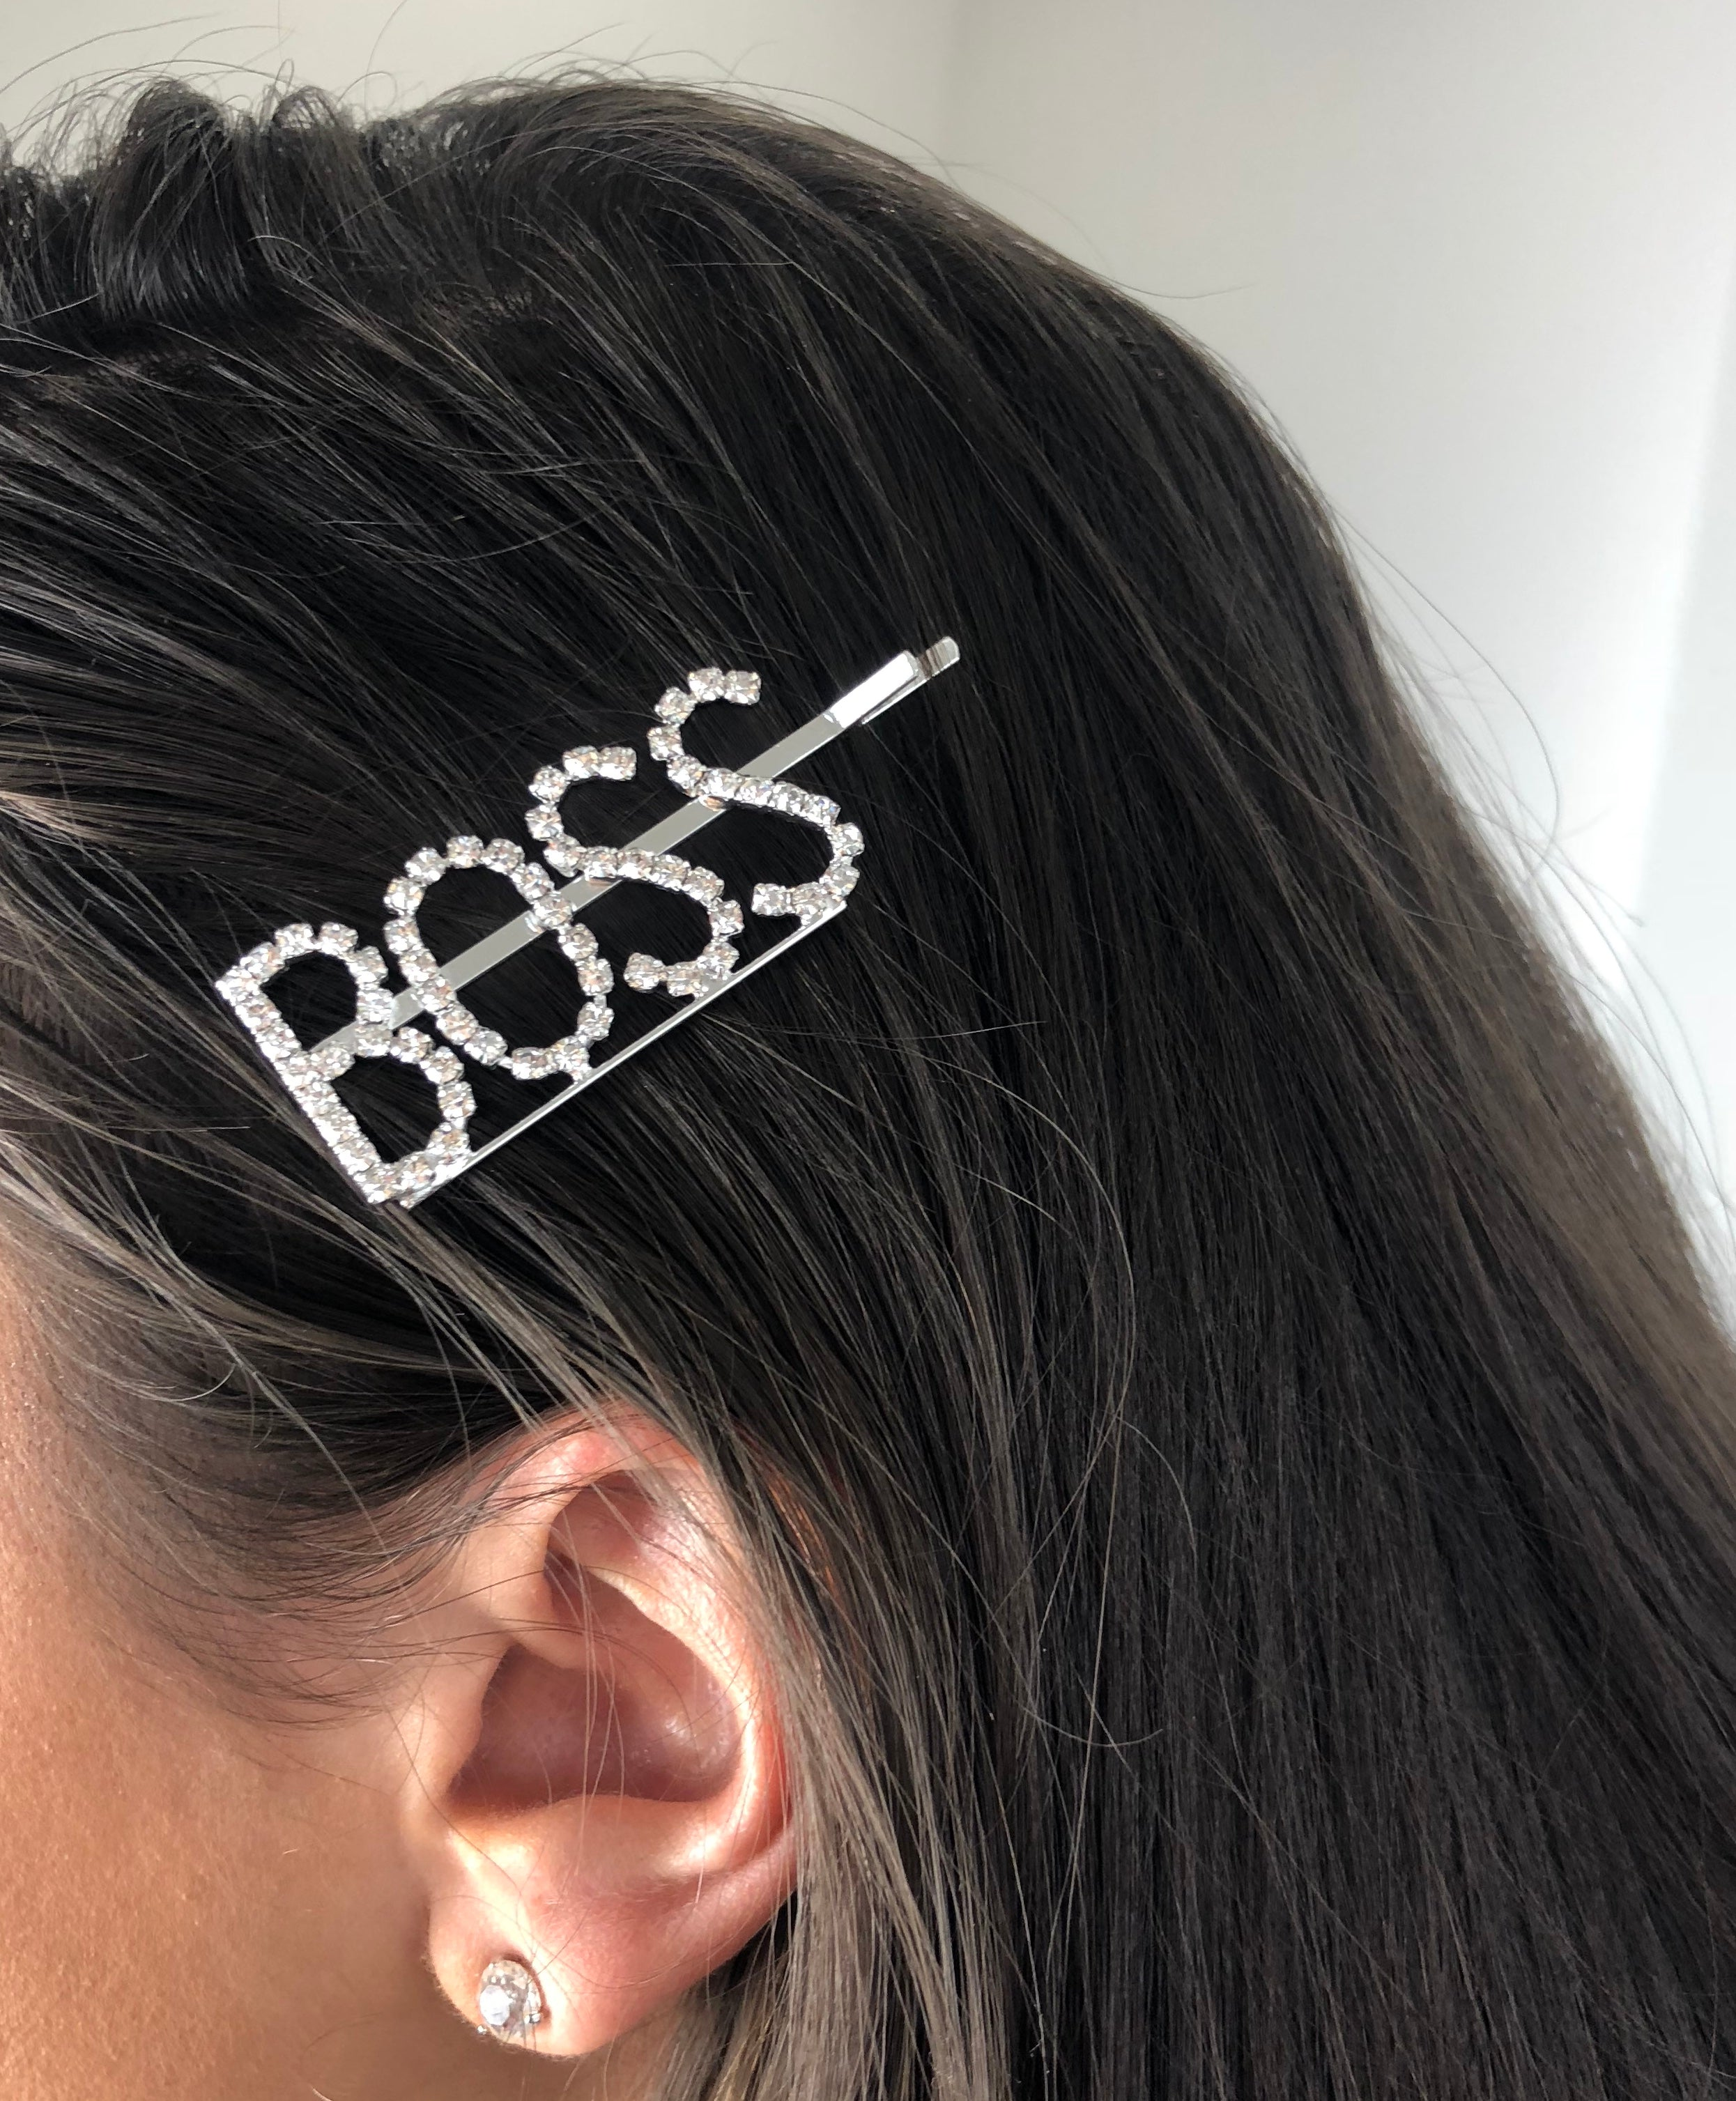 'Boss' Hair Slide